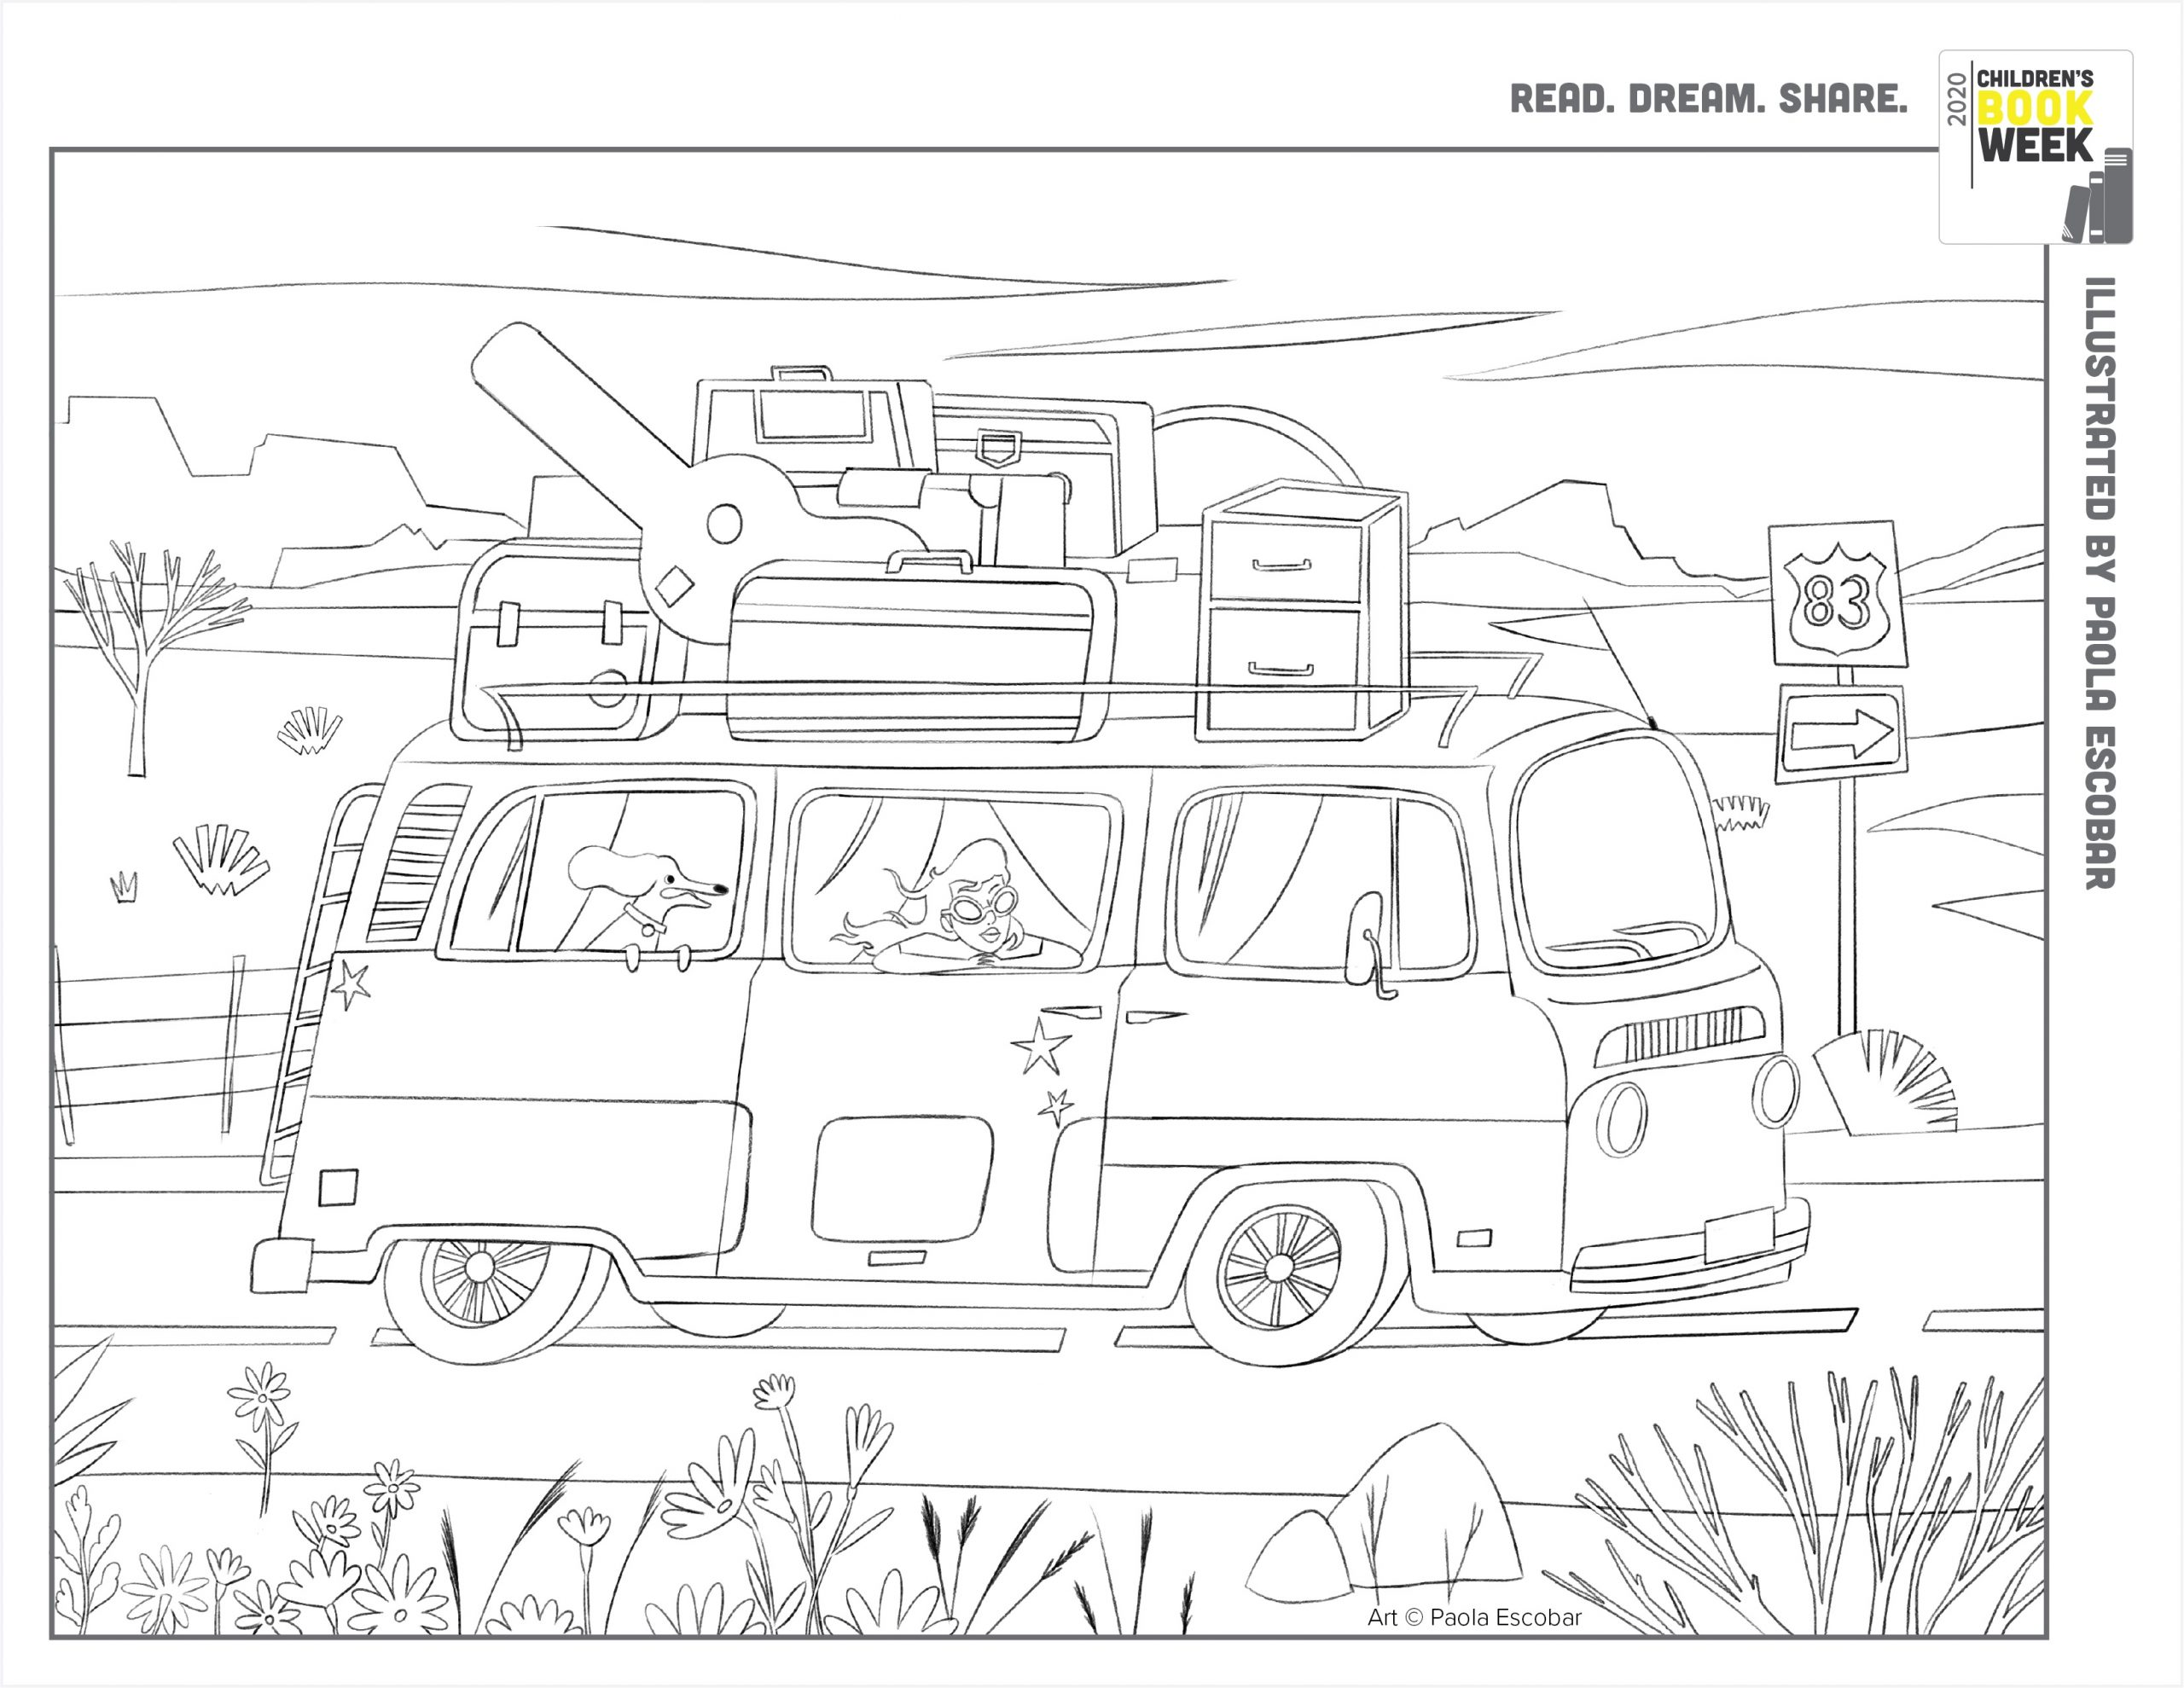 Coloring Book Pages Every Child A Reader